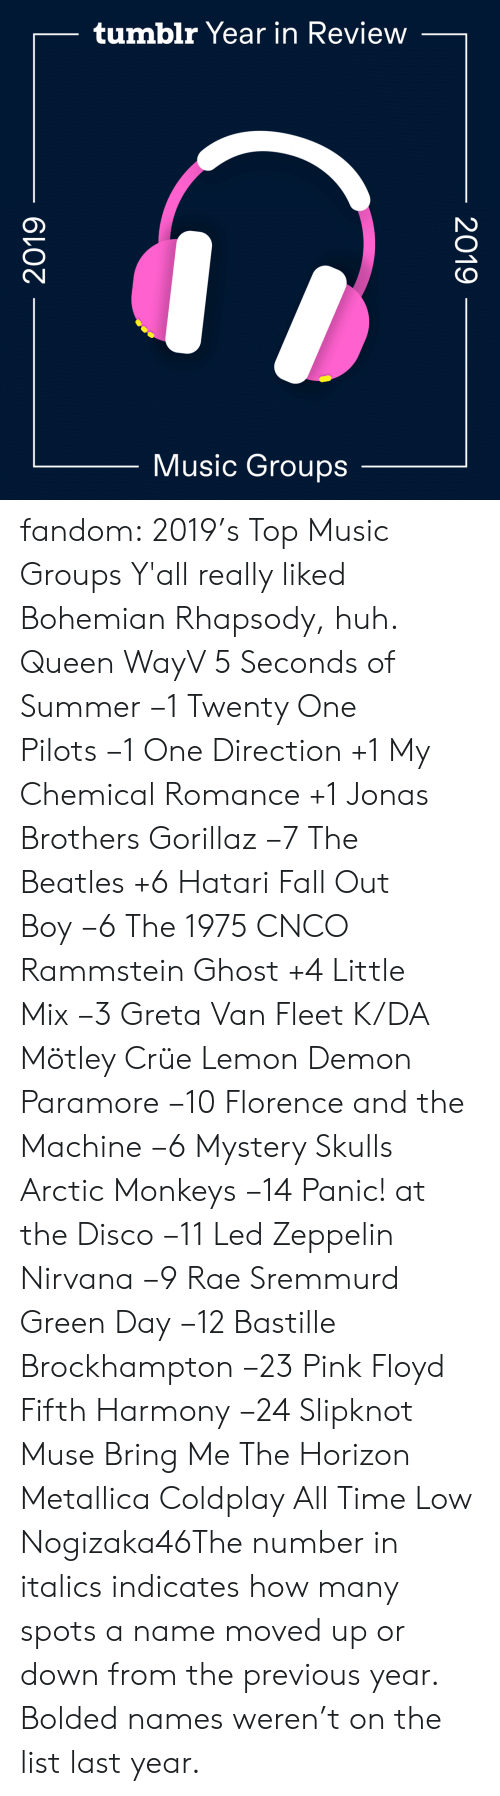 florence: tumblr Year in Review  Music Groups  2019  2019 fandom:  2019's Top Music Groups  Y'all really liked Bohemian Rhapsody, huh.  Queen  WayV  5 Seconds of Summer −1  Twenty One Pilots −1  One Direction +1  My Chemical Romance +1  Jonas Brothers  Gorillaz −7  The Beatles +6  Hatari  Fall Out Boy −6  The 1975  CNCO  Rammstein  Ghost +4  Little Mix −3  Greta Van Fleet  K/DA  Mötley Crüe  Lemon Demon  Paramore −10  Florence and the Machine −6  Mystery Skulls  Arctic Monkeys −14  Panic! at the Disco −11  Led Zeppelin   Nirvana −9  Rae Sremmurd  Green Day −12  Bastille  Brockhampton −23  Pink Floyd  Fifth Harmony −24  Slipknot  Muse  Bring Me The Horizon  Metallica  Coldplay  All Time Low  Nogizaka46The number in italics indicates how many spots a name moved up or down from the previous year. Bolded names weren't on the list last year.